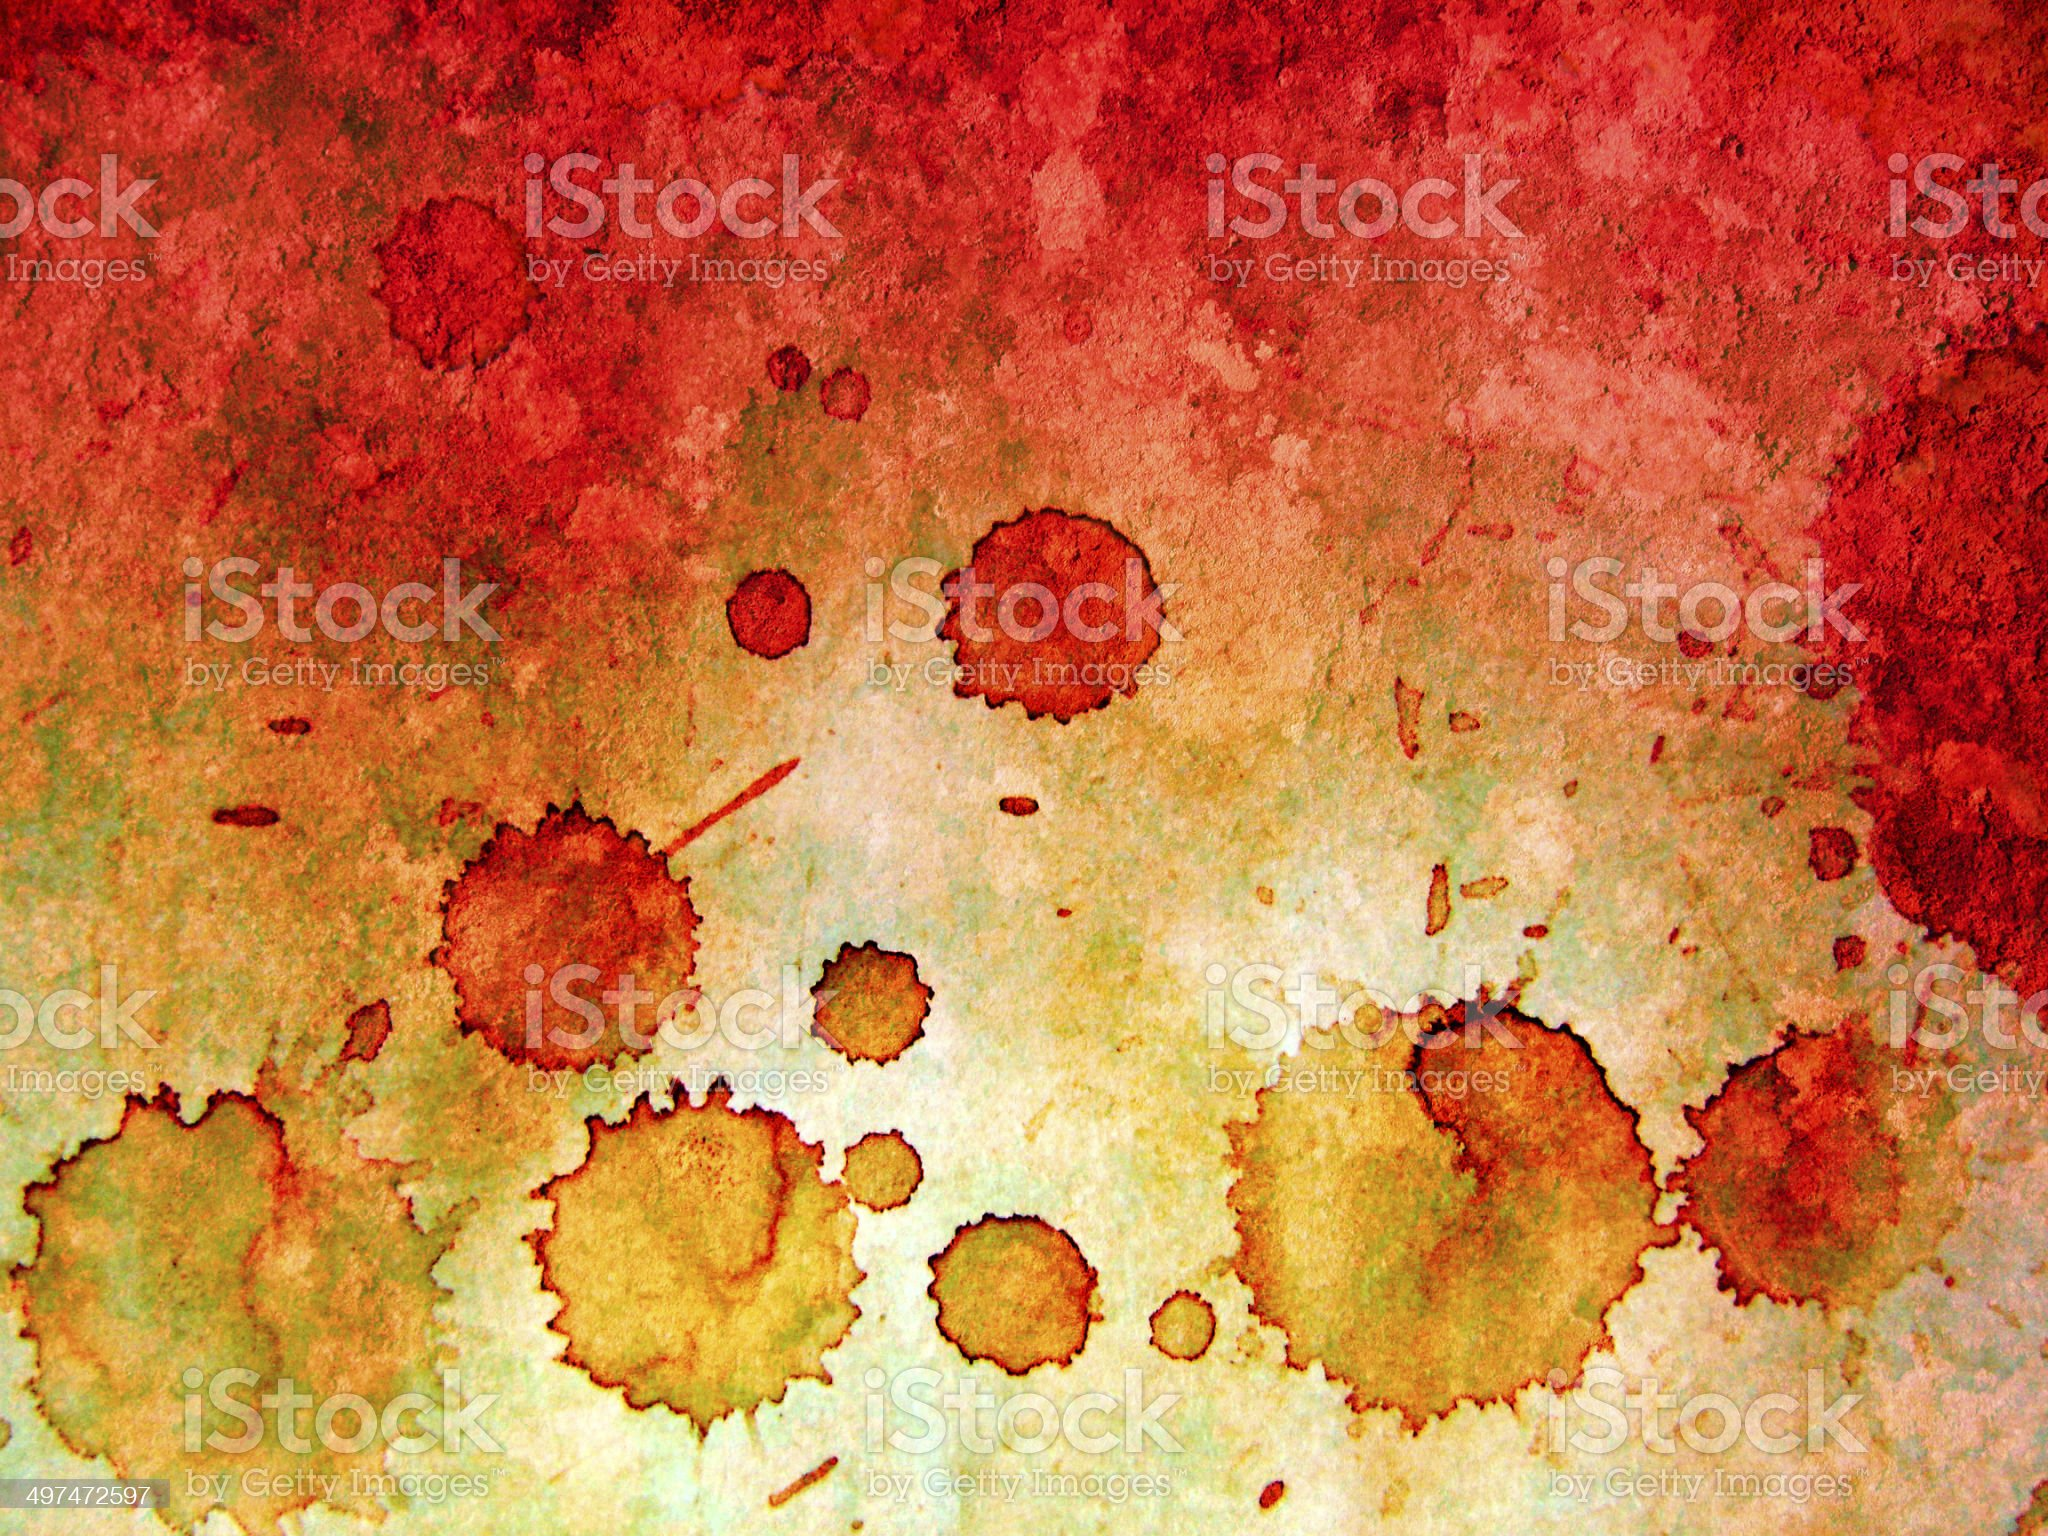 Grunge bloody background royalty-free stock photo